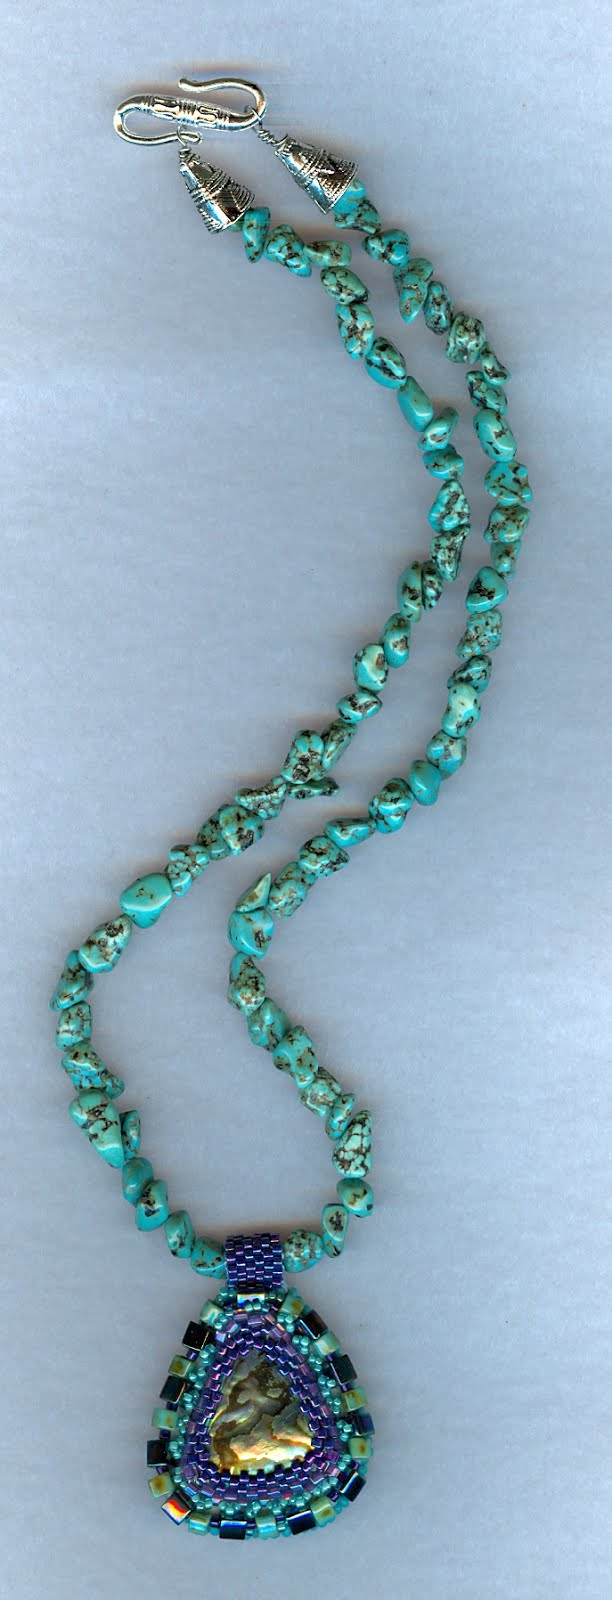 Turquoise and Paua shell necklace